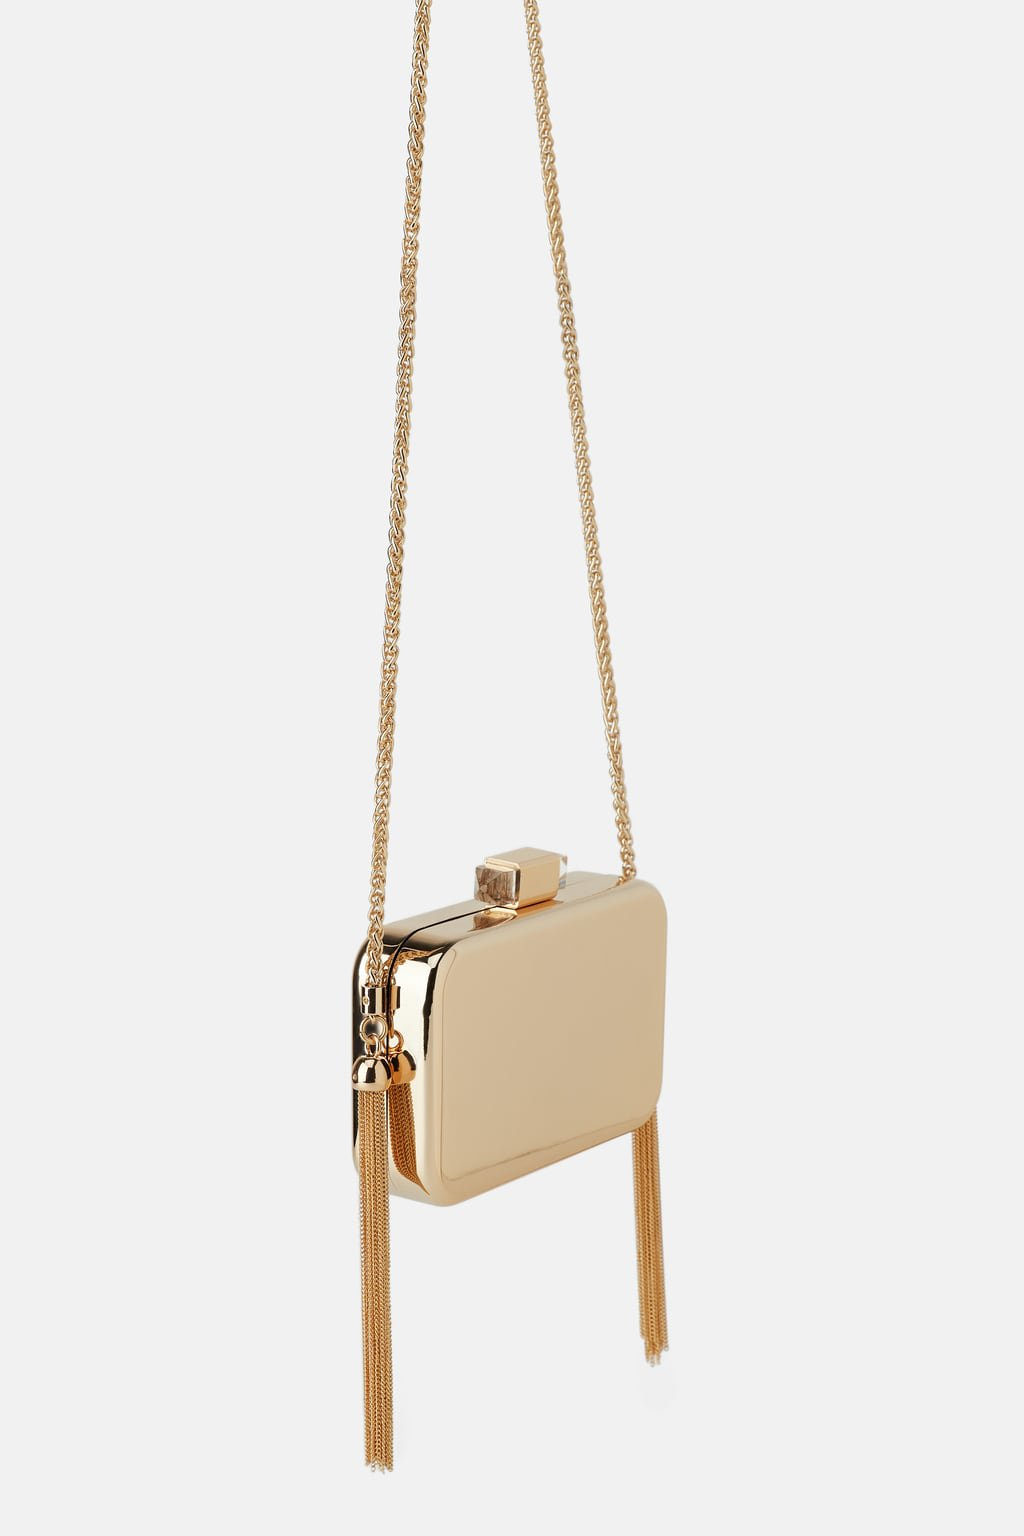 GOLD BOX BAG-BAGS-WOMAN-SHOES&BAGS | ZARA United States